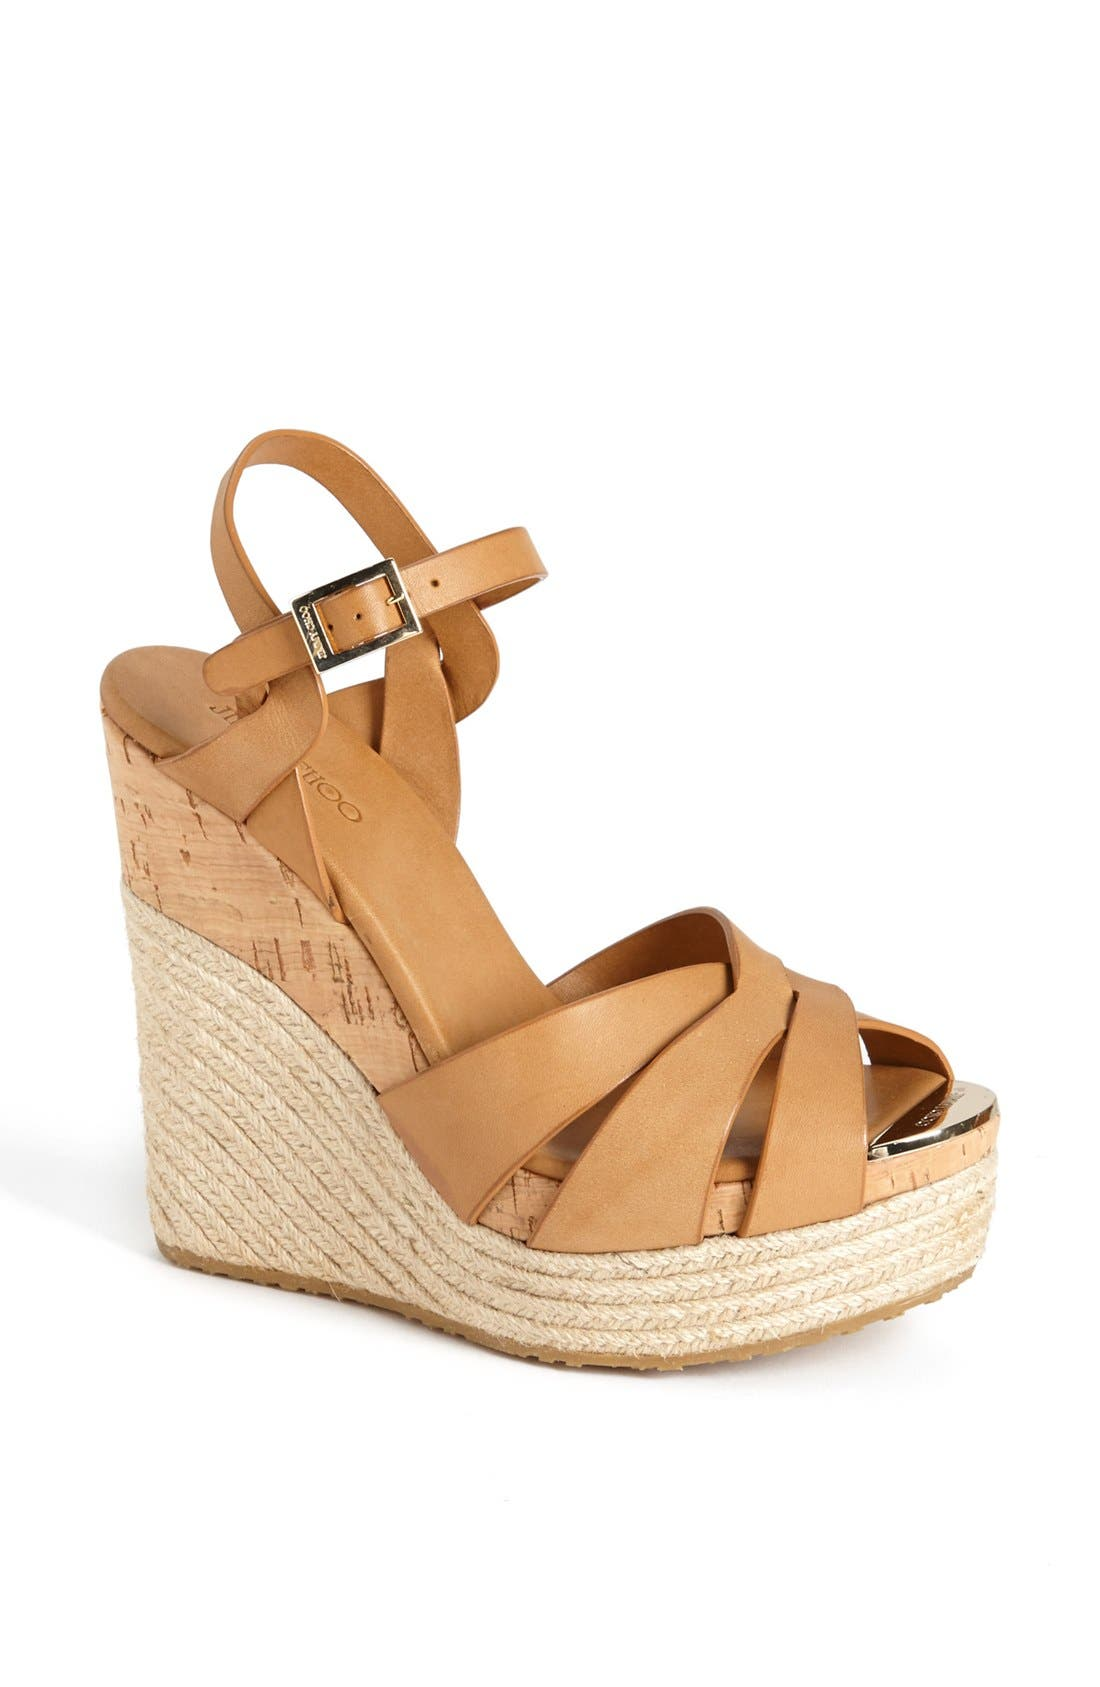 Alternate Image 1 Selected - Jimmy Choo 'Peddle' Wedge Sandal